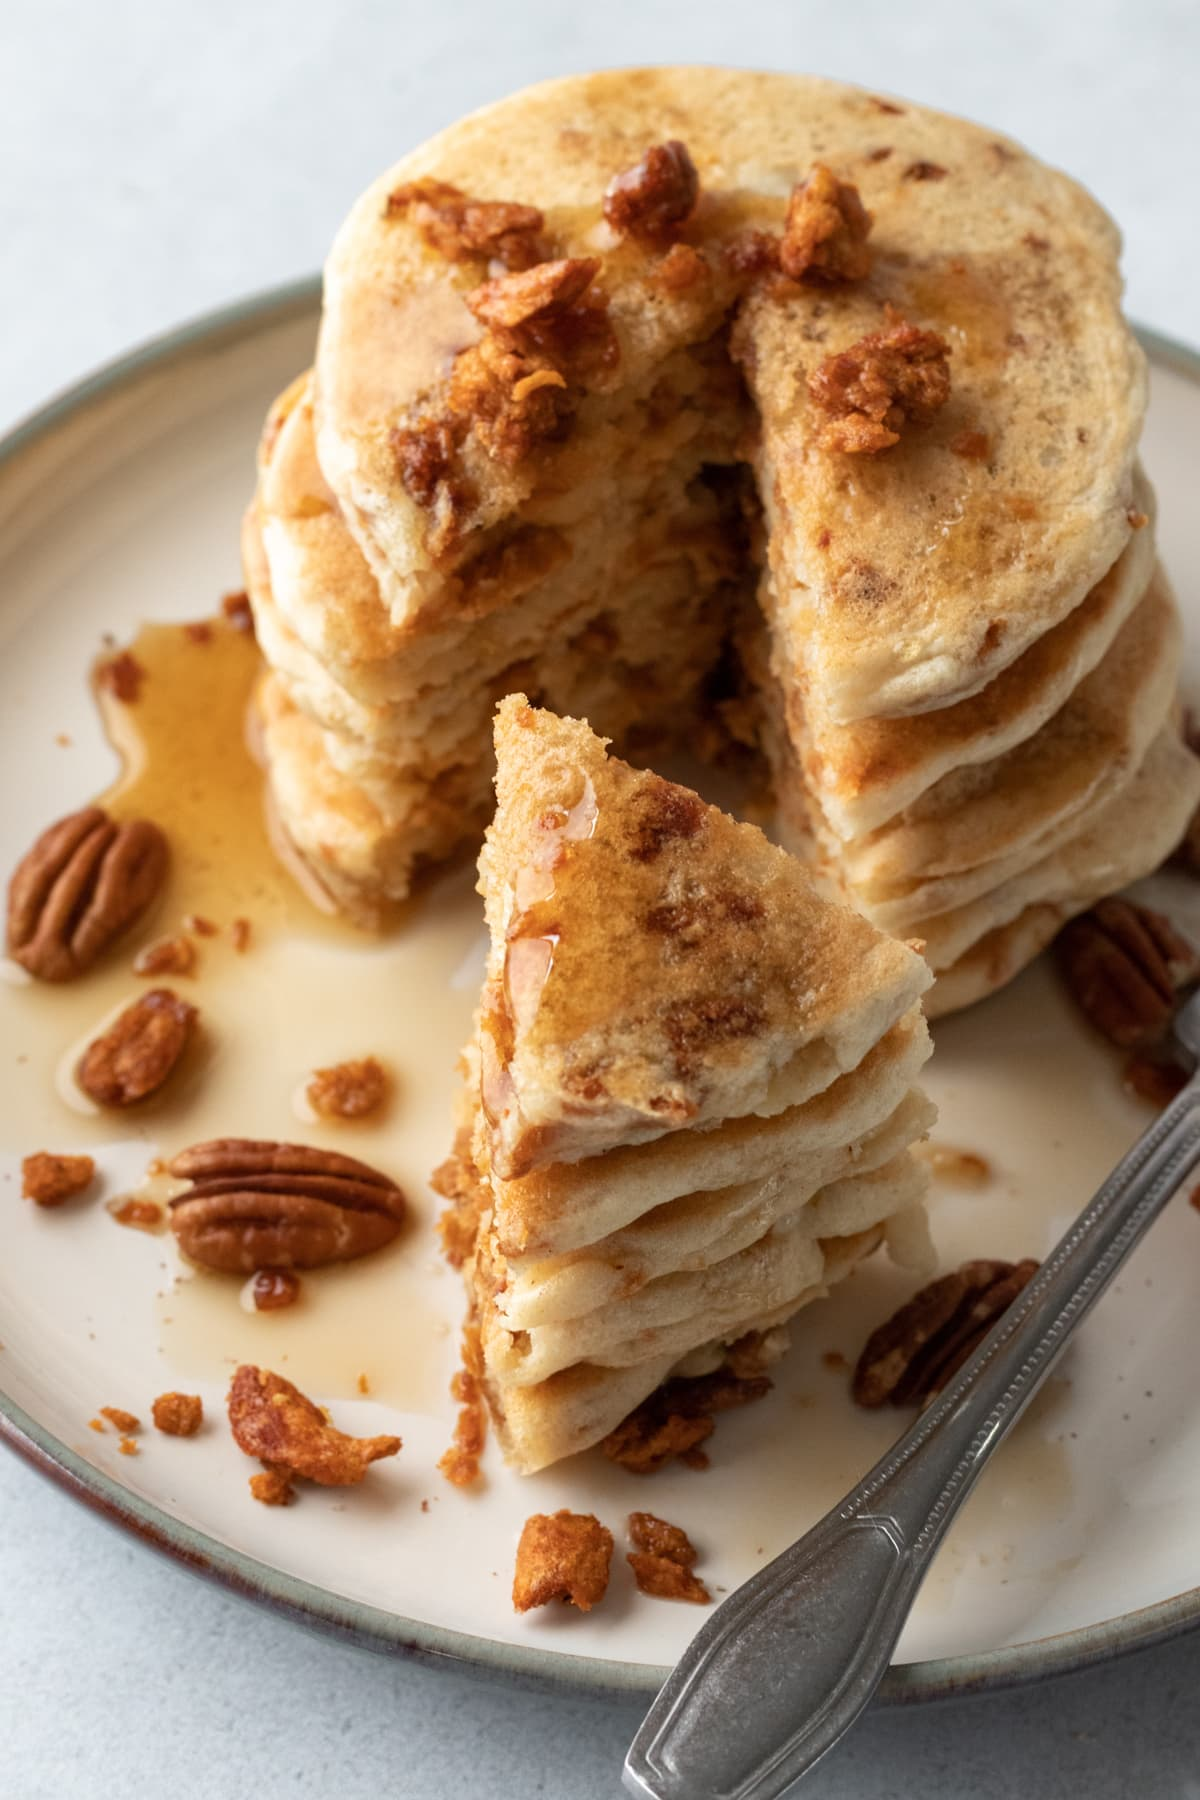 pancake stack drizzled with maple syrup